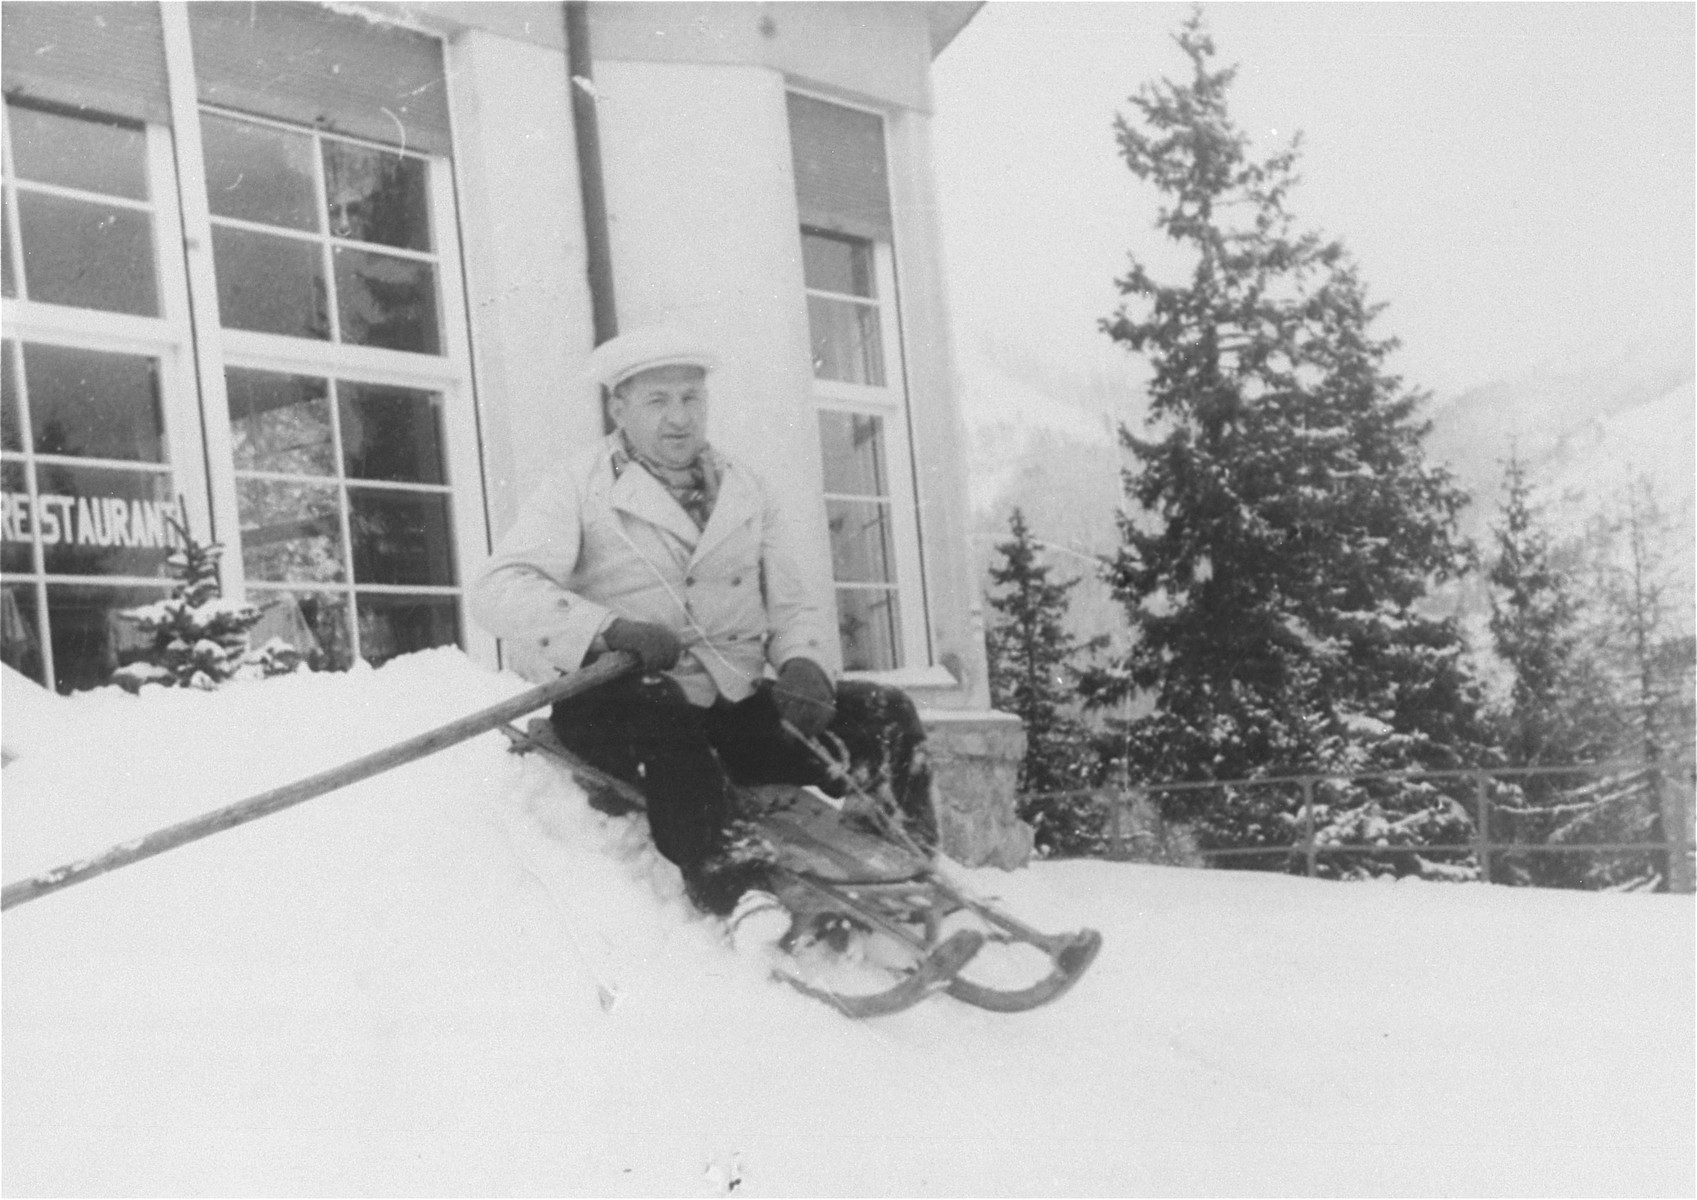 Portrait of Nandor Muller sledding at a winter resort in the Tatra mountains.